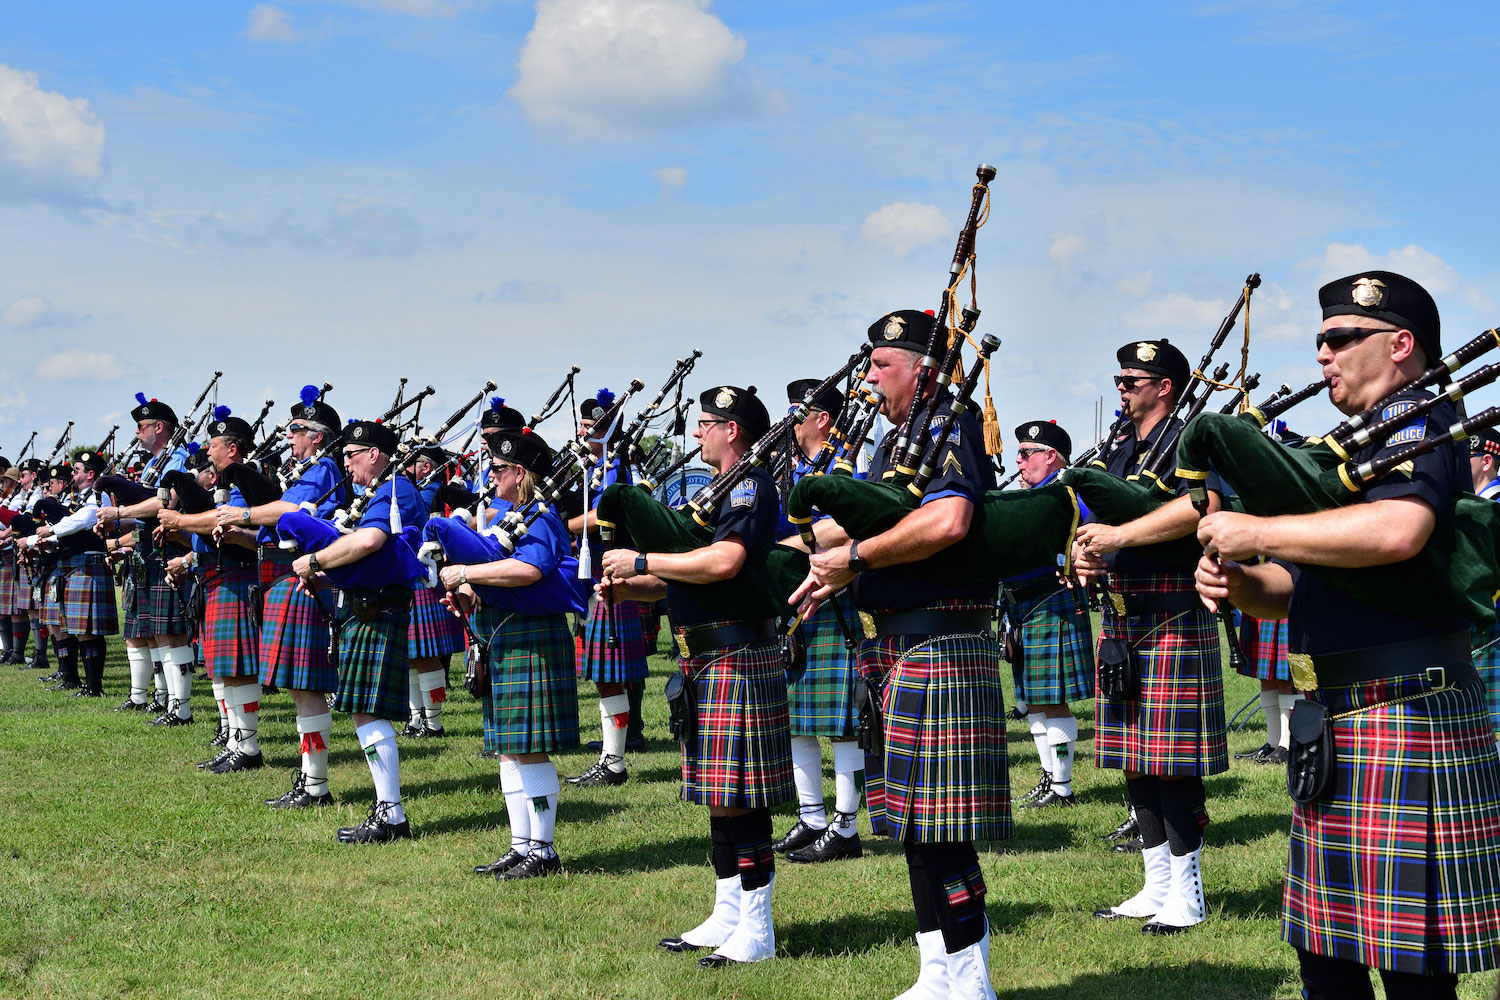 Scotfest | Oklahoma - Piping and Drumming